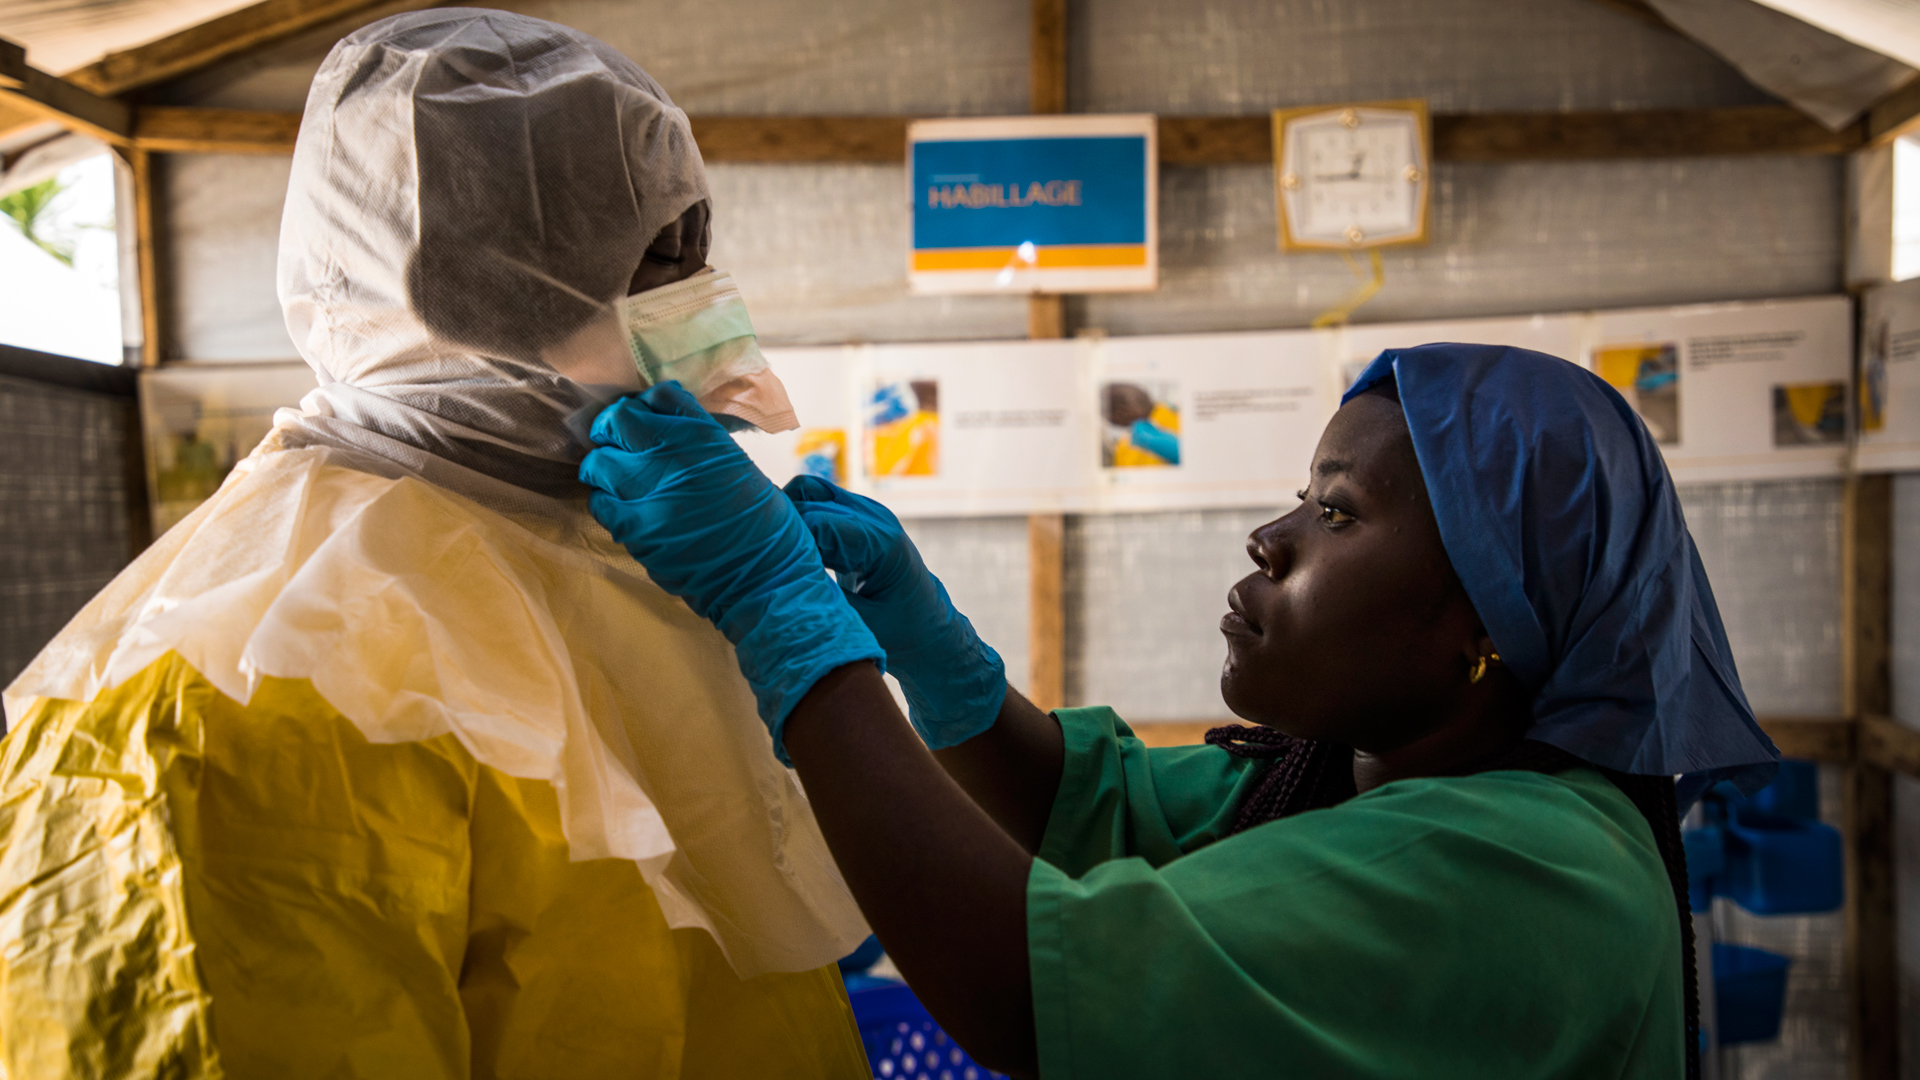 A health worker puts on protective scrubs before entering an Ebola treatment centre in Beni, Democratic Republic of Congo.